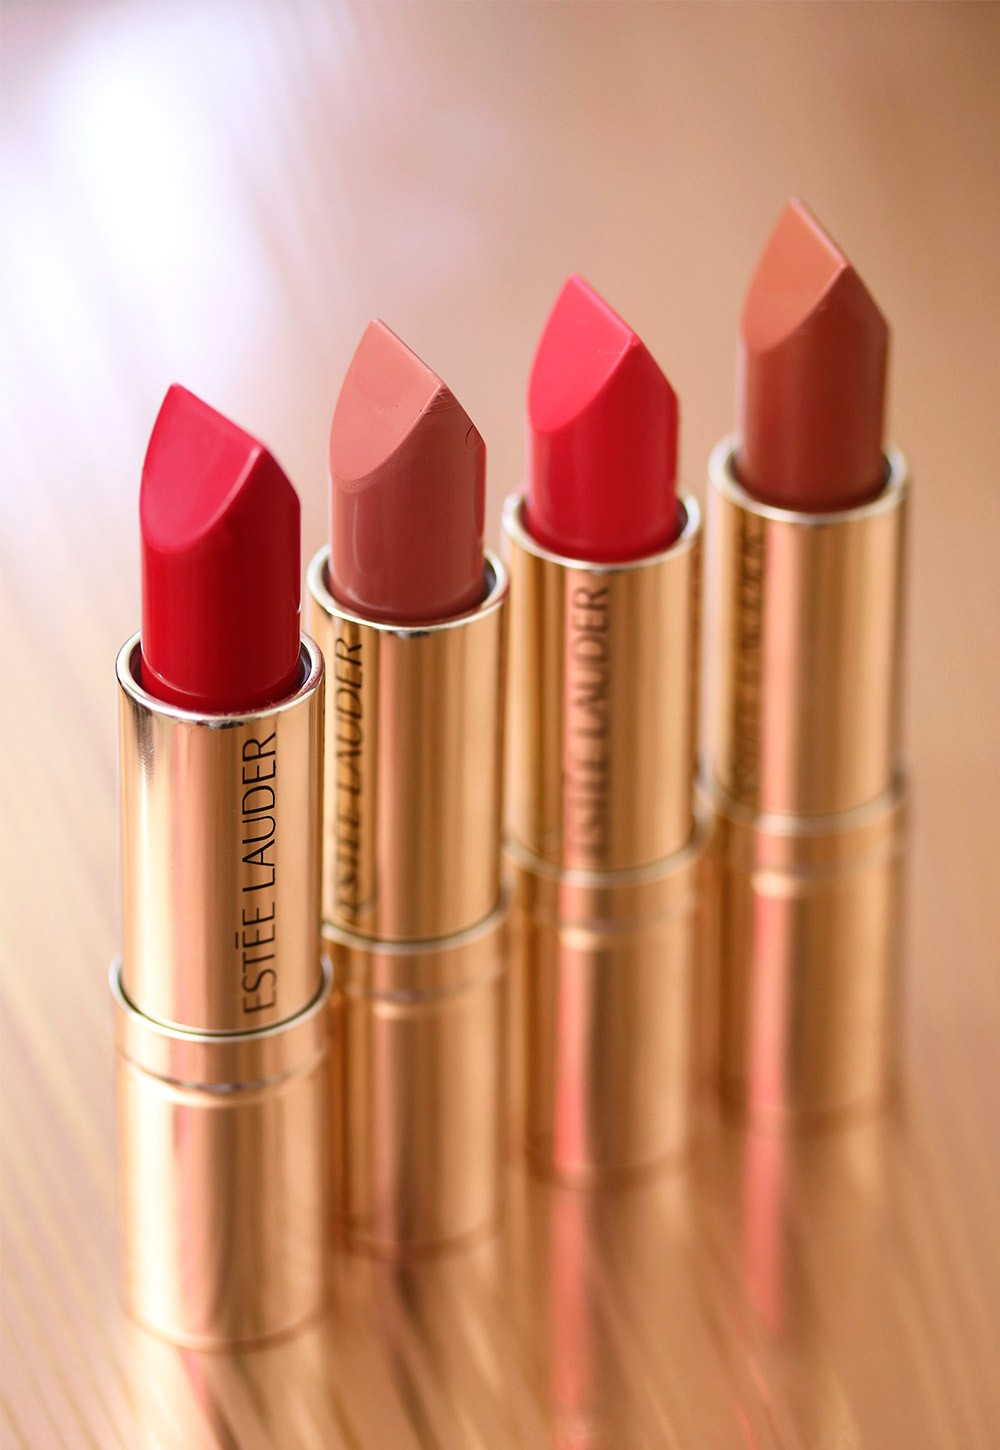 Funky Bullets! A Quick Look at a Few Shades From the Estée Lauder Pure Color Love Lipstick Line